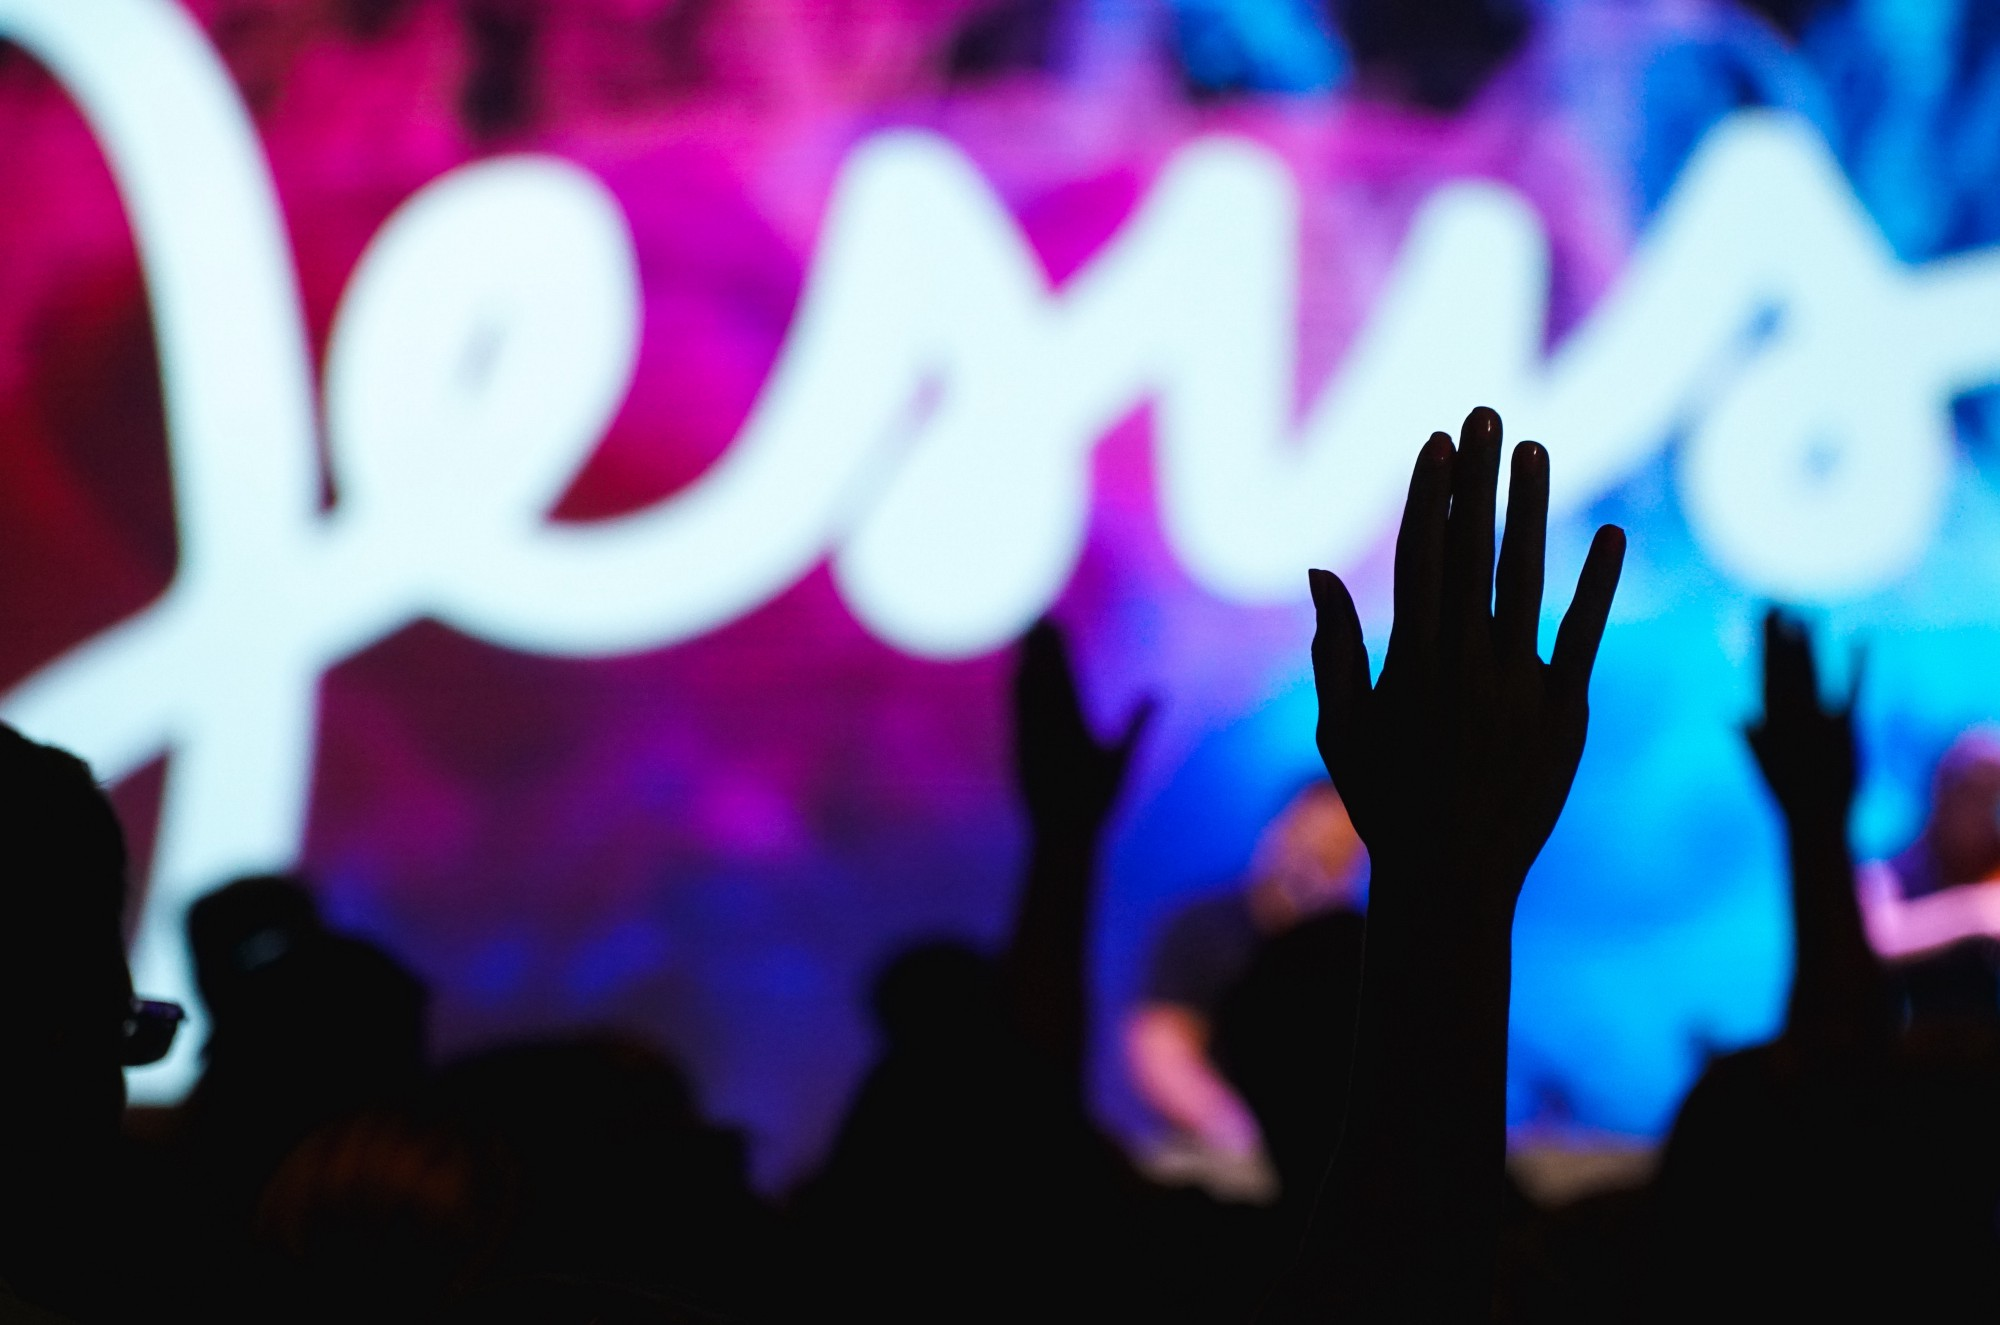 Images From The Heart Of Worship: Finding The Heart Of Worship